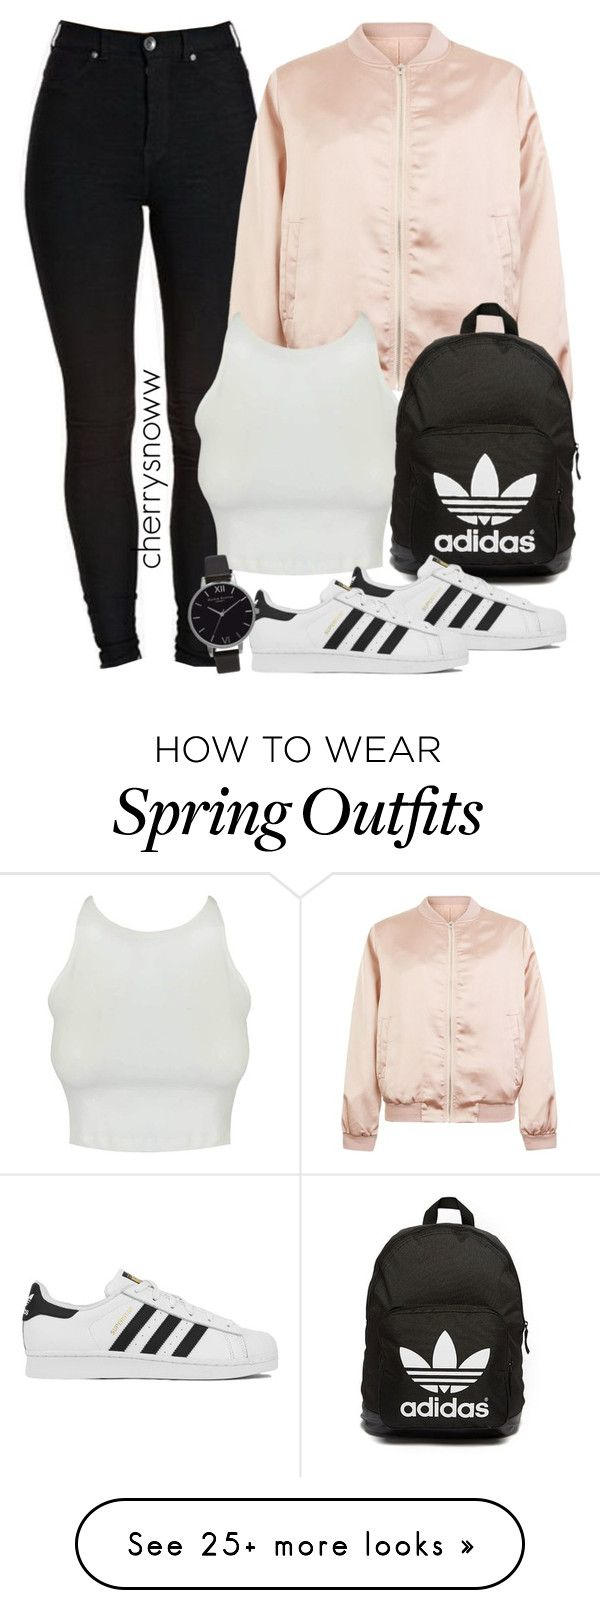 """Cute sporty swag spring outfit"" by cherrysnoww on Polyvore featuring Cameo Rose, adidas Originals, adidas and Olivia Burton"